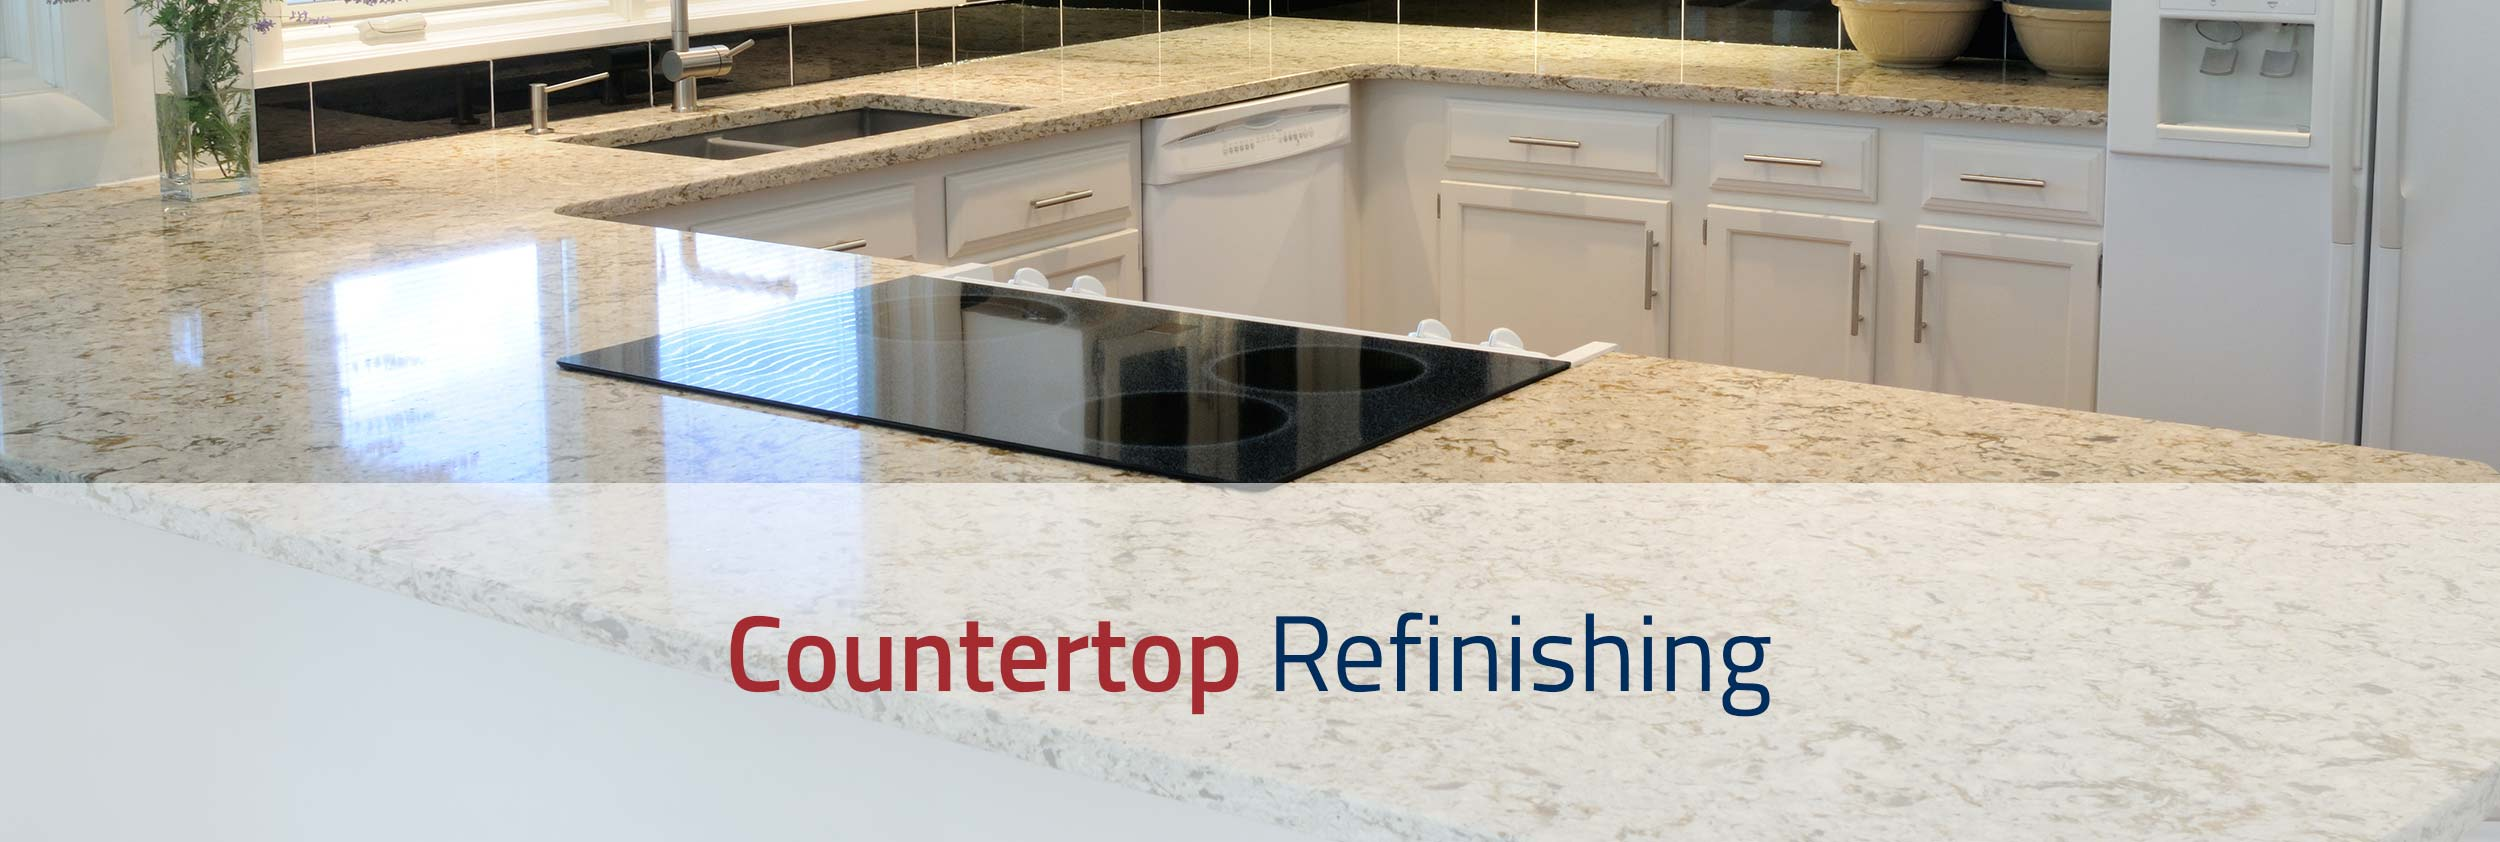 Countertop Refinishing Marlton NJ